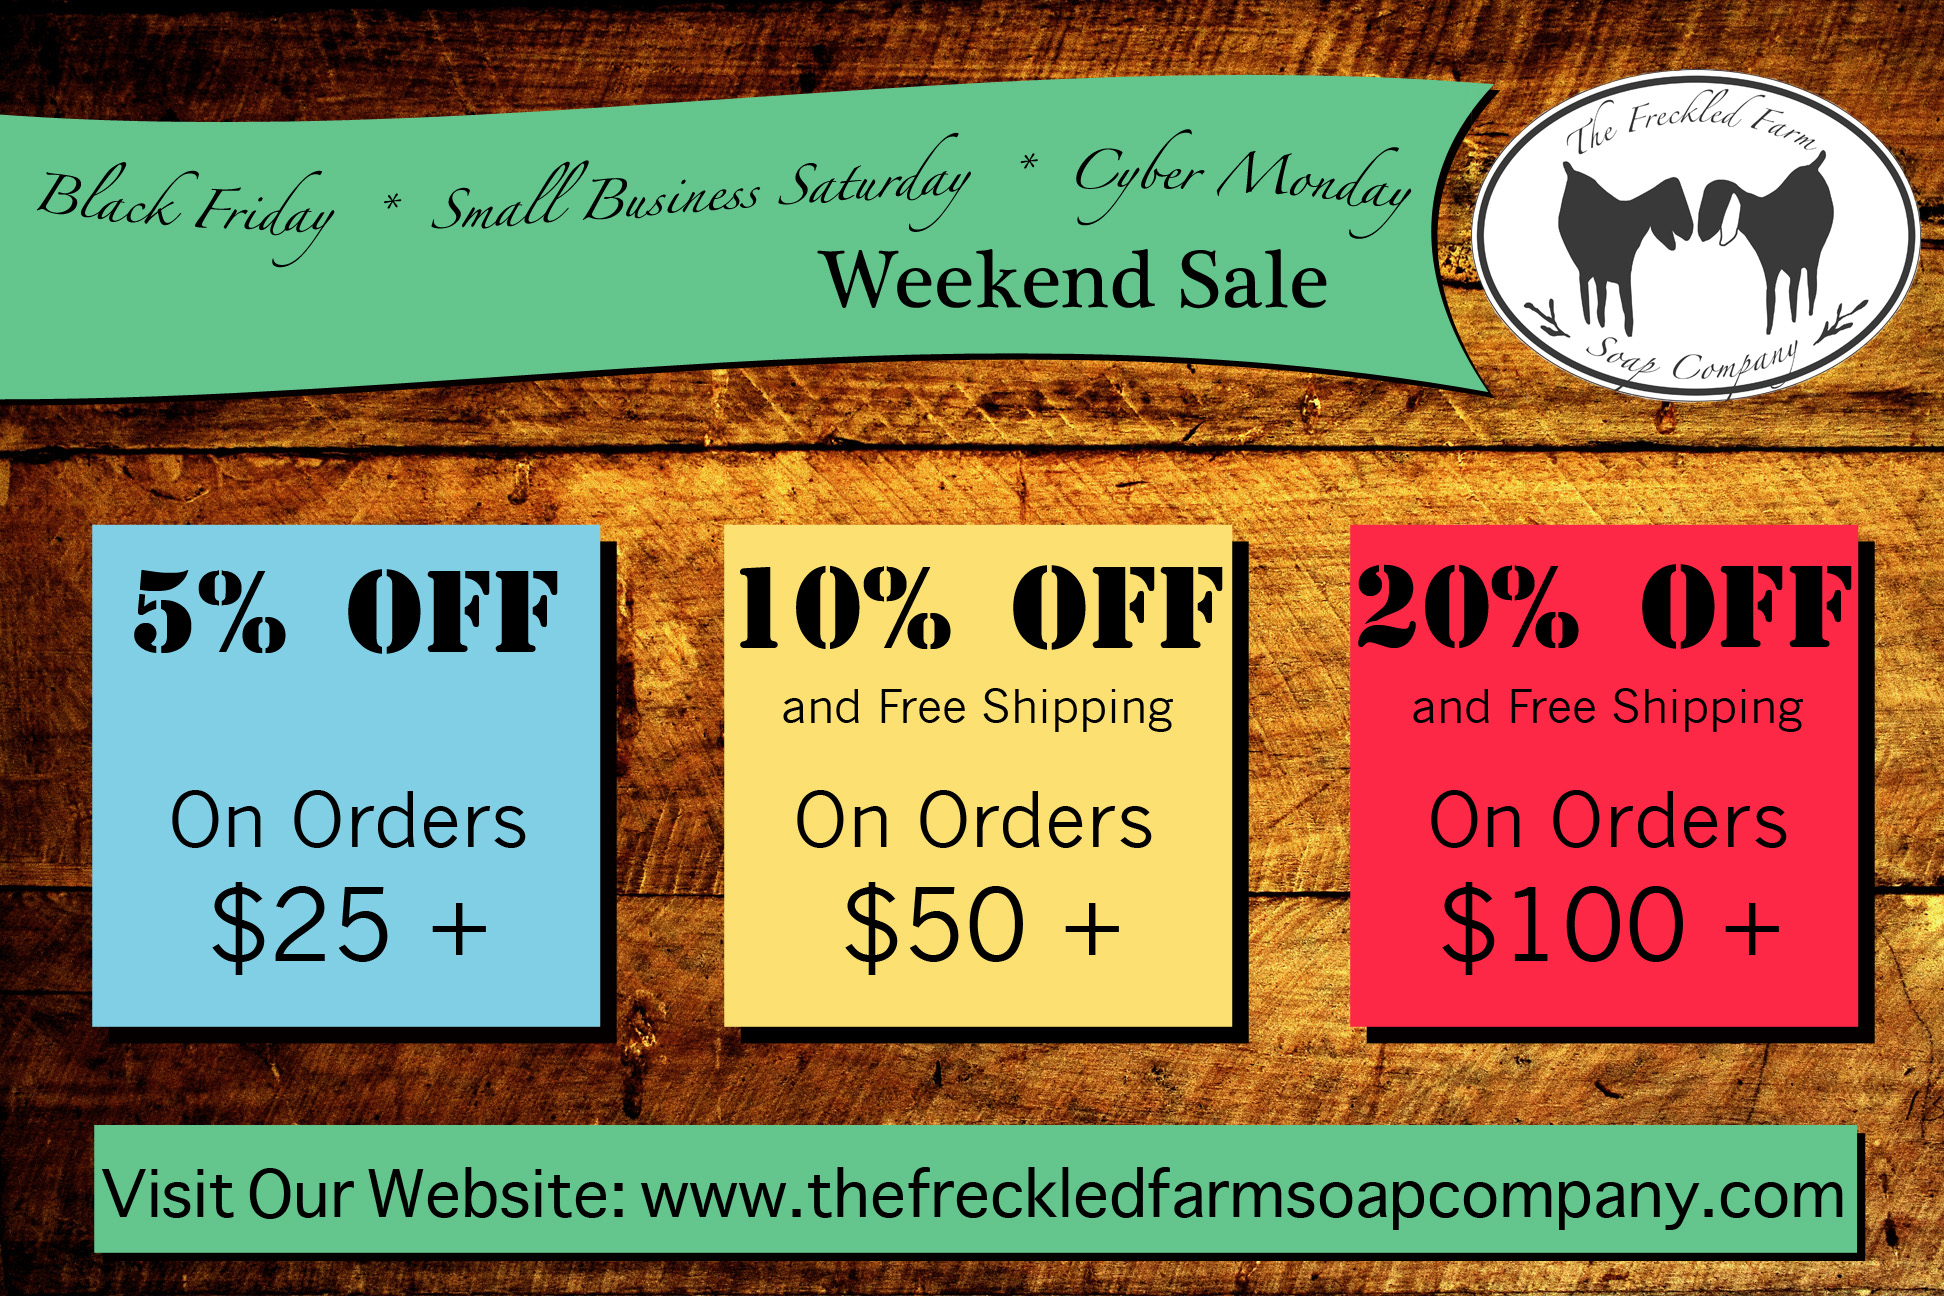 Weekend Sale Goat Milk Soap - The Freckled Farm Soap Company